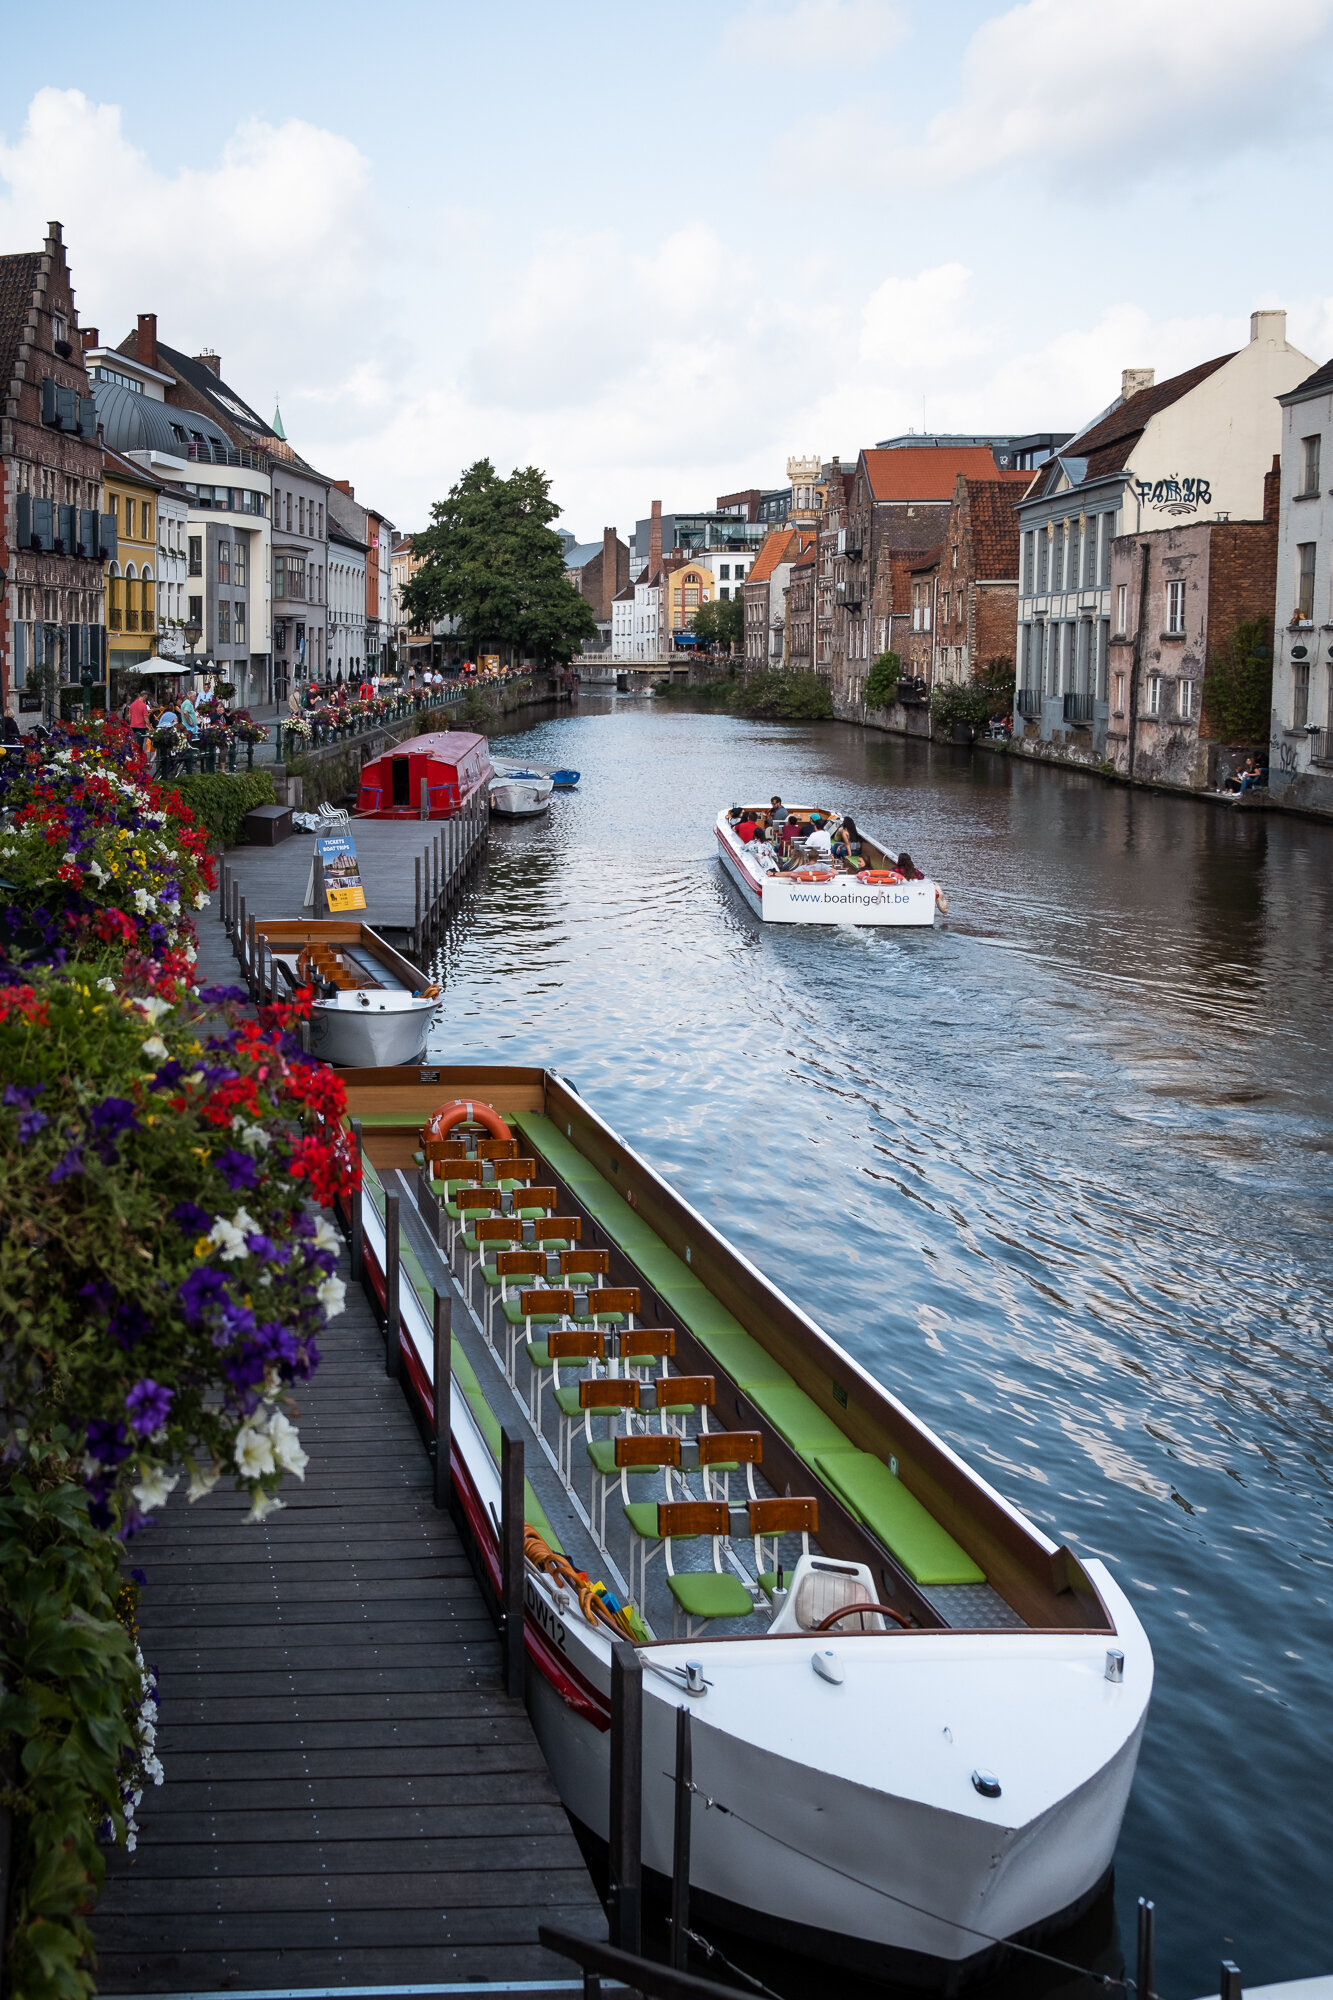 Tour boats along the River Leie